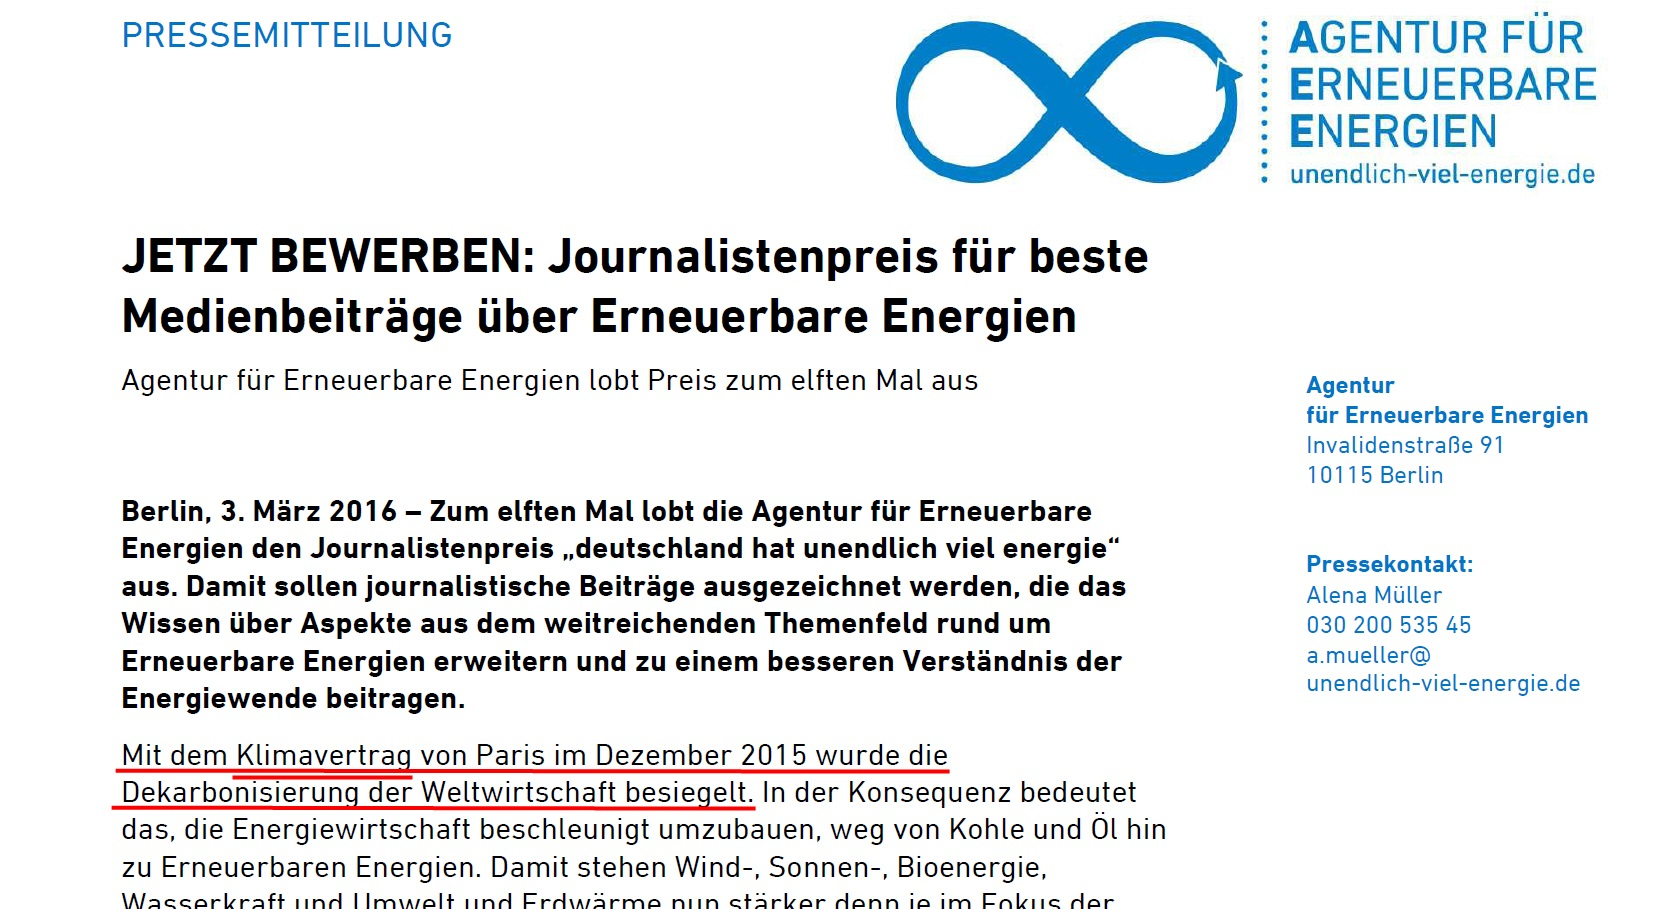 AEE_Journalistenpreis_20160303_Klimavertrag